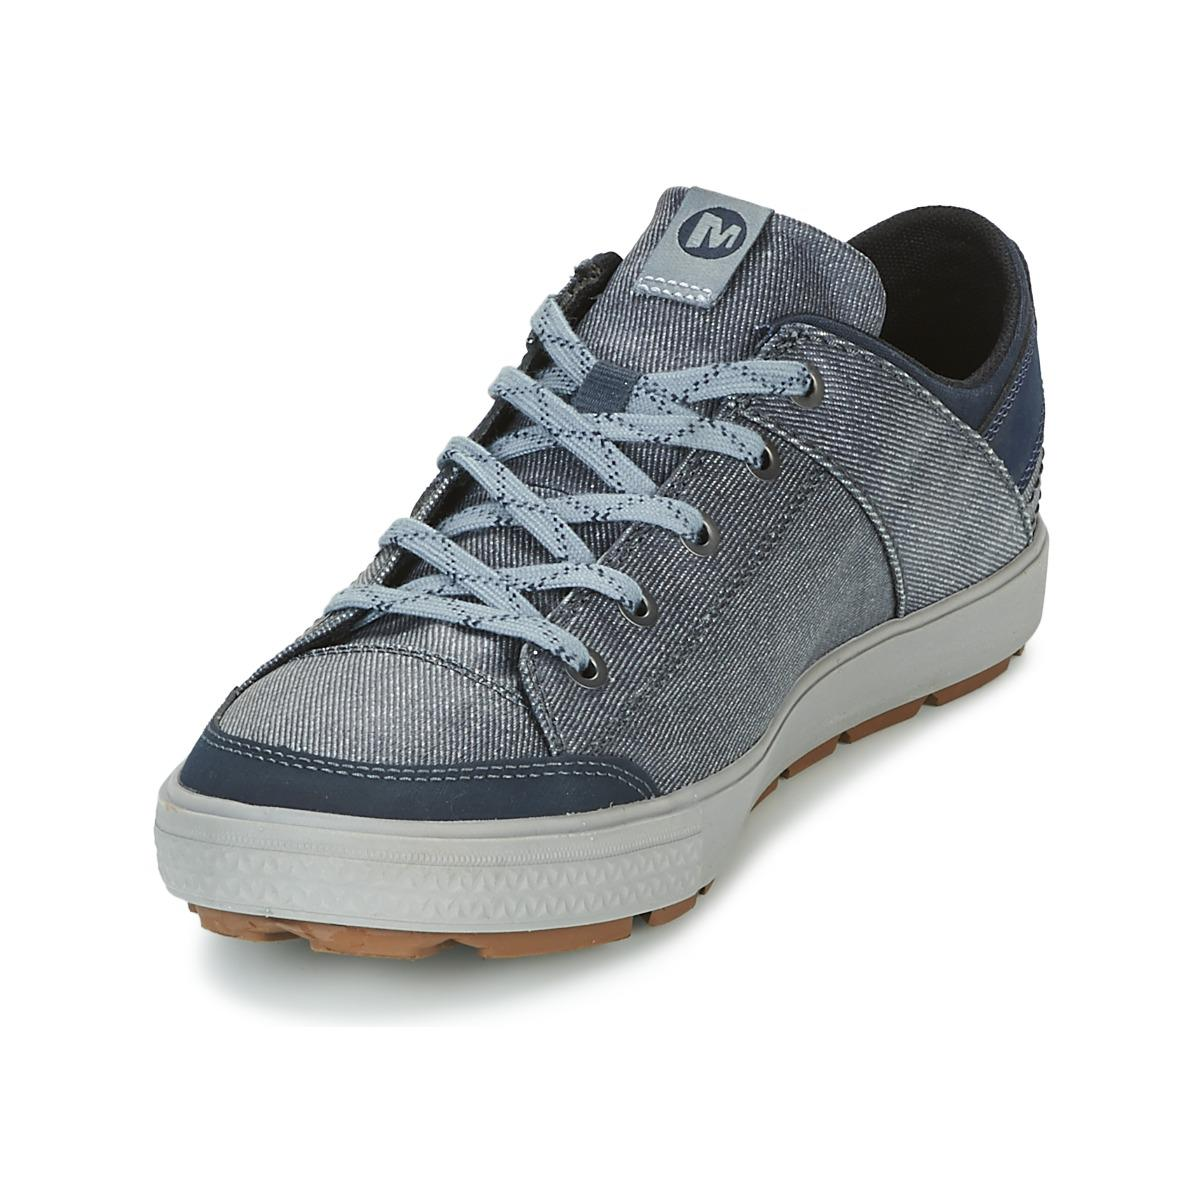 Merrell Rant Discovery Lace Canvas in Blue for Men